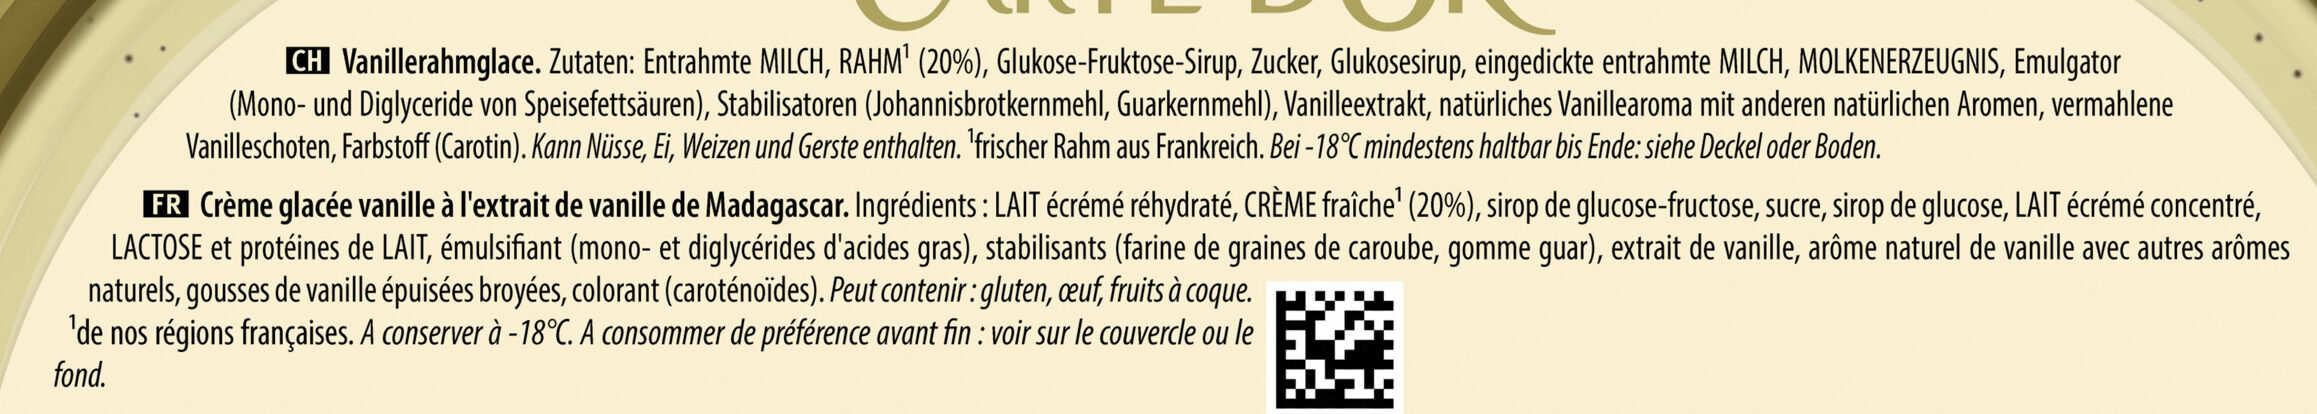 Carte D'or Les Authentiques Glace Vanille de Madagascar Bac - Ingredienti - fr